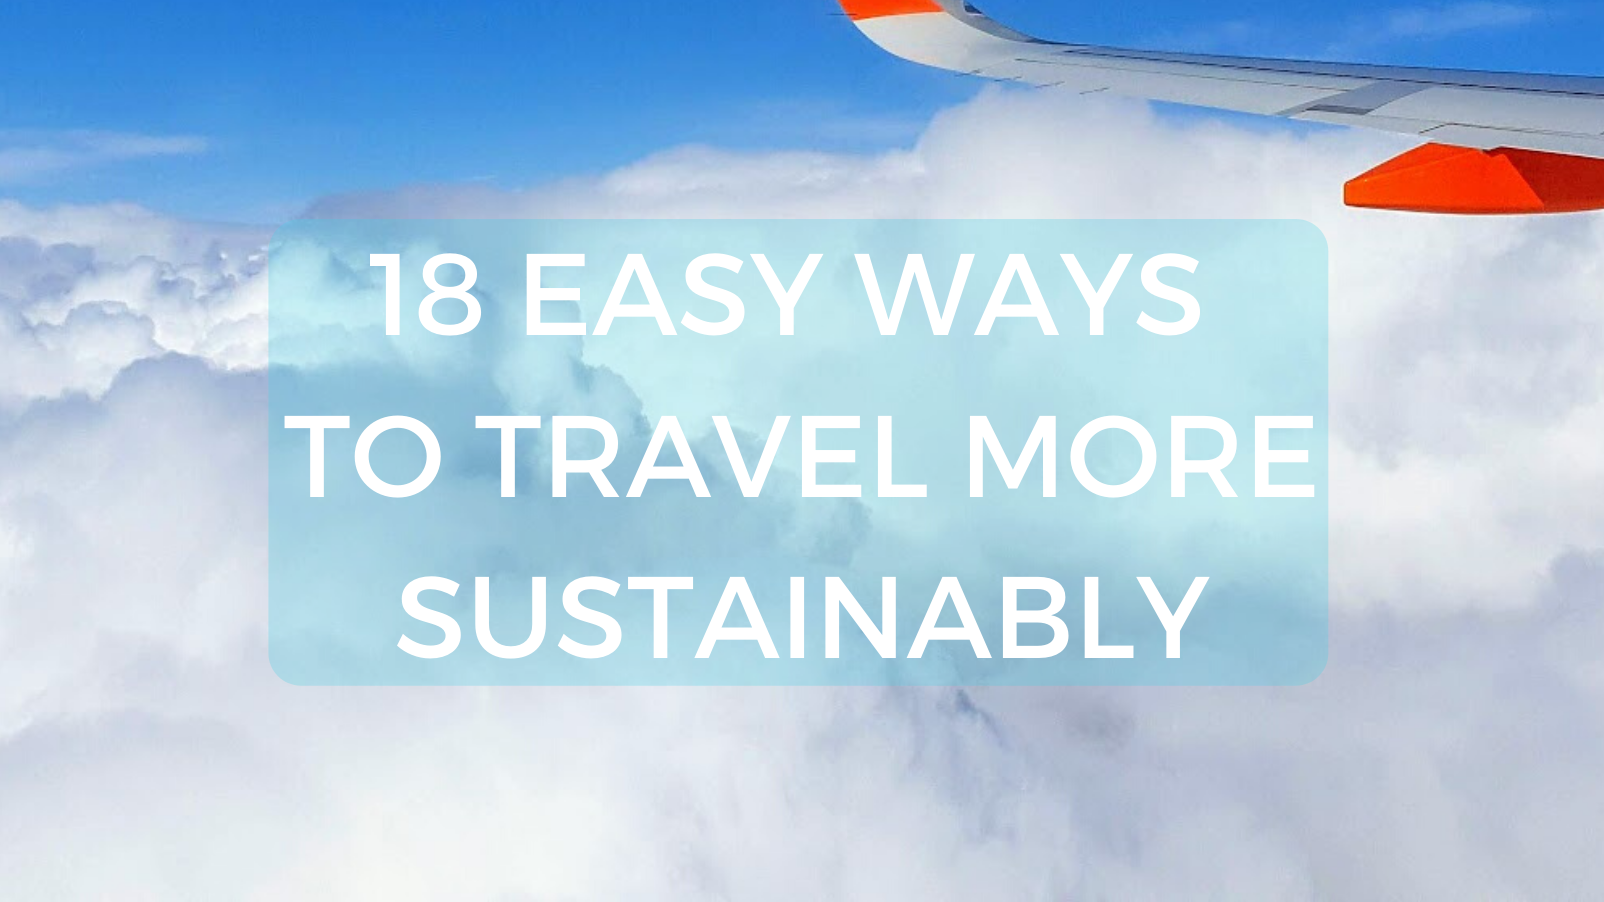 18 Easy Ways To Travel More Sustainably